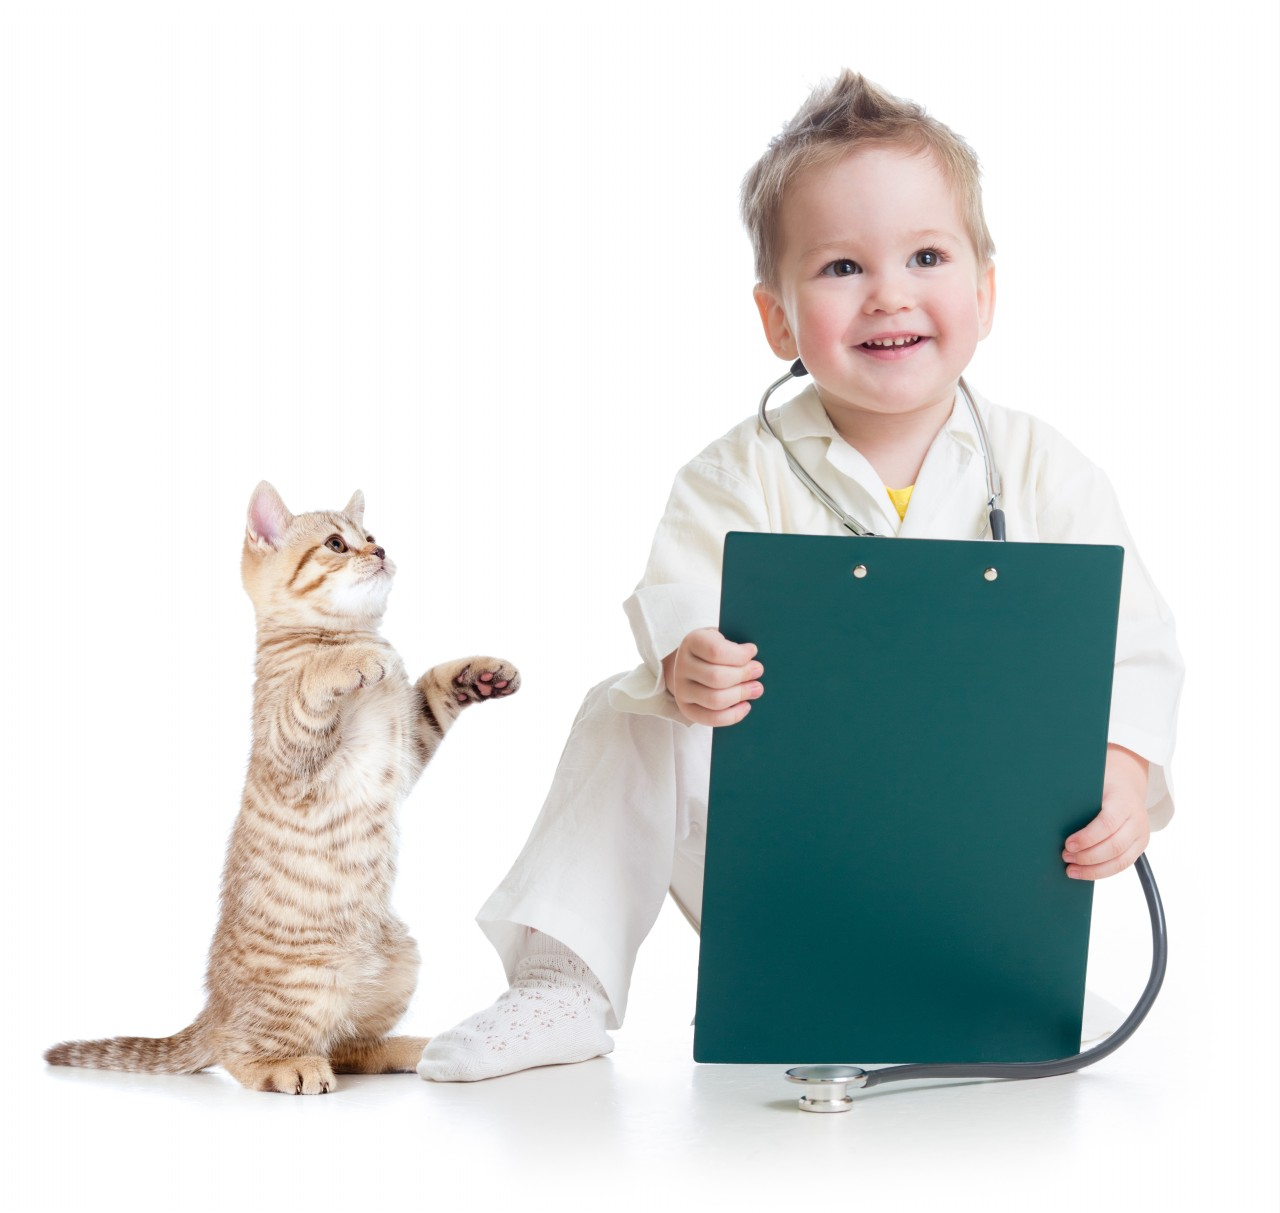 doctor kid Kid playing doctor with cat